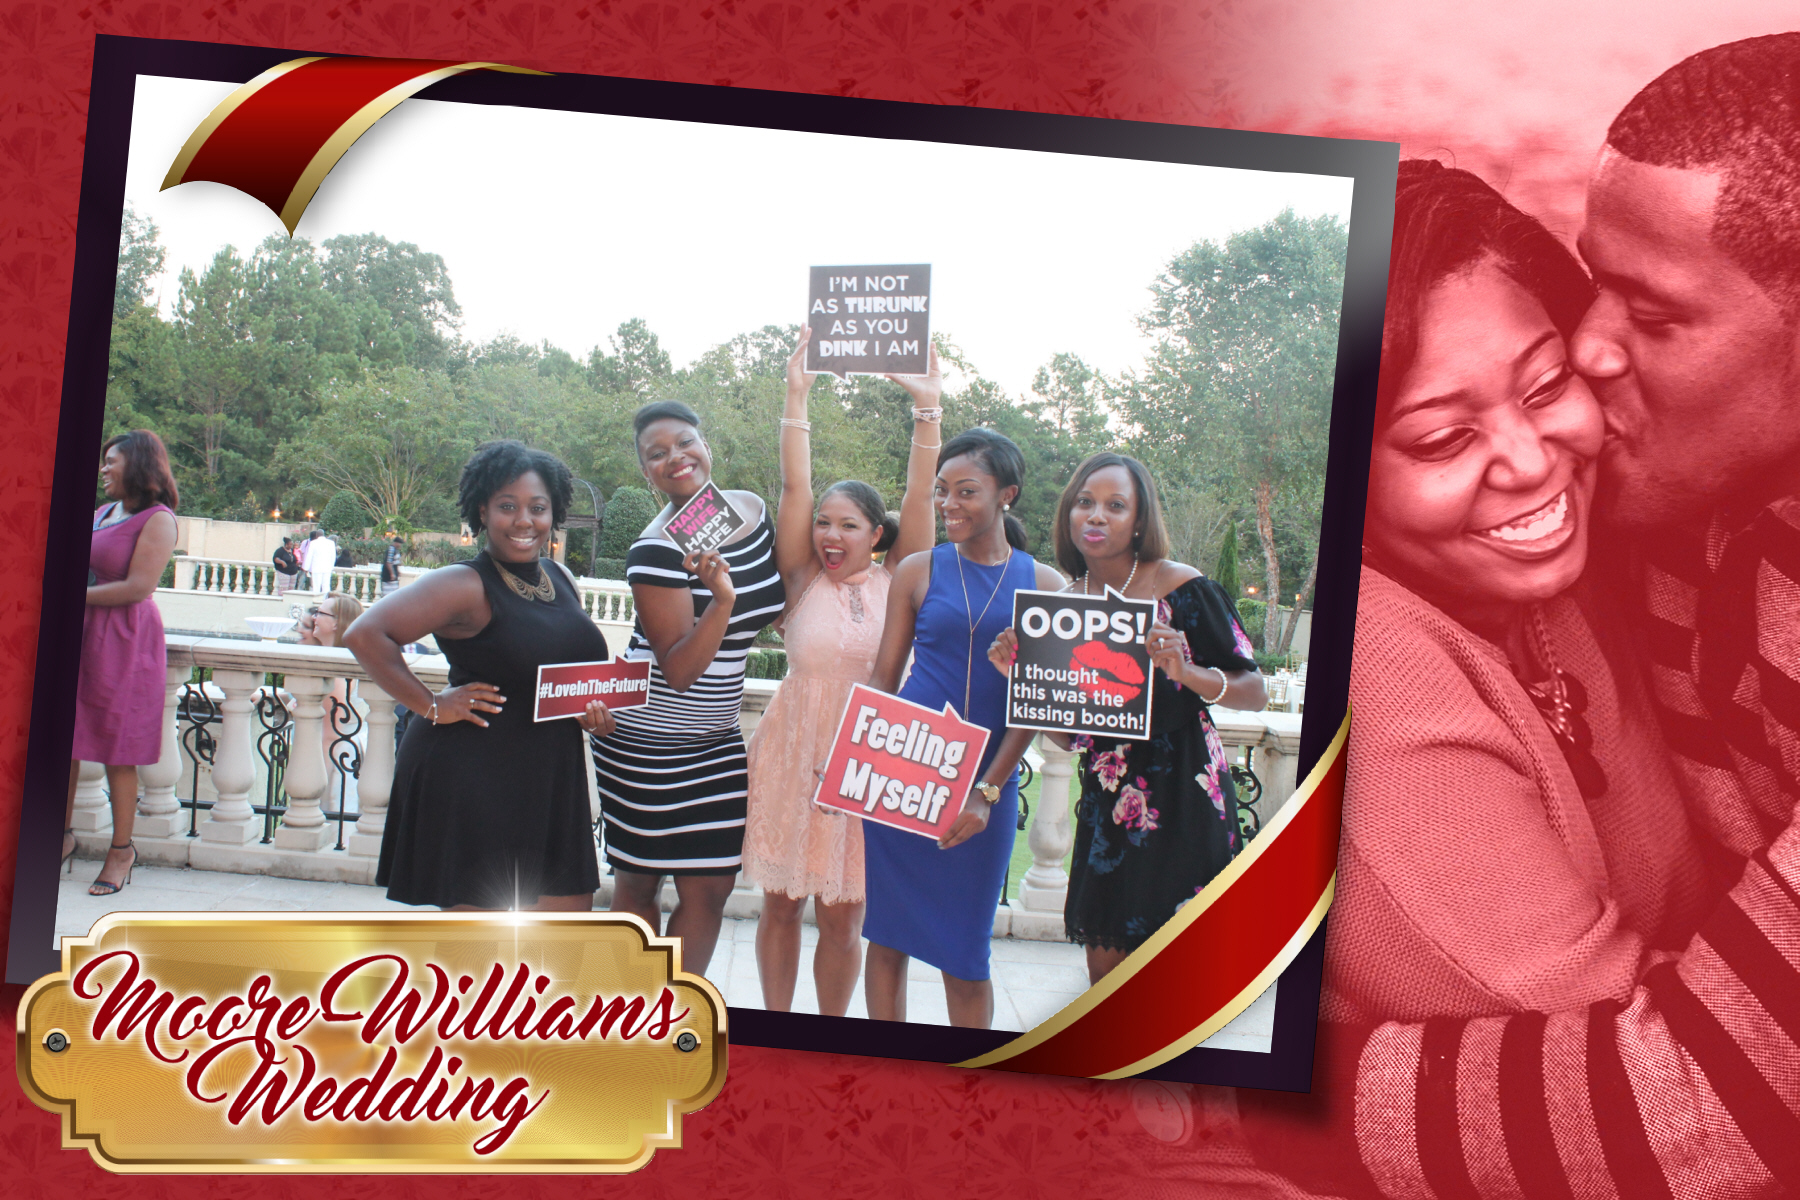 Moore-Willams Wedding